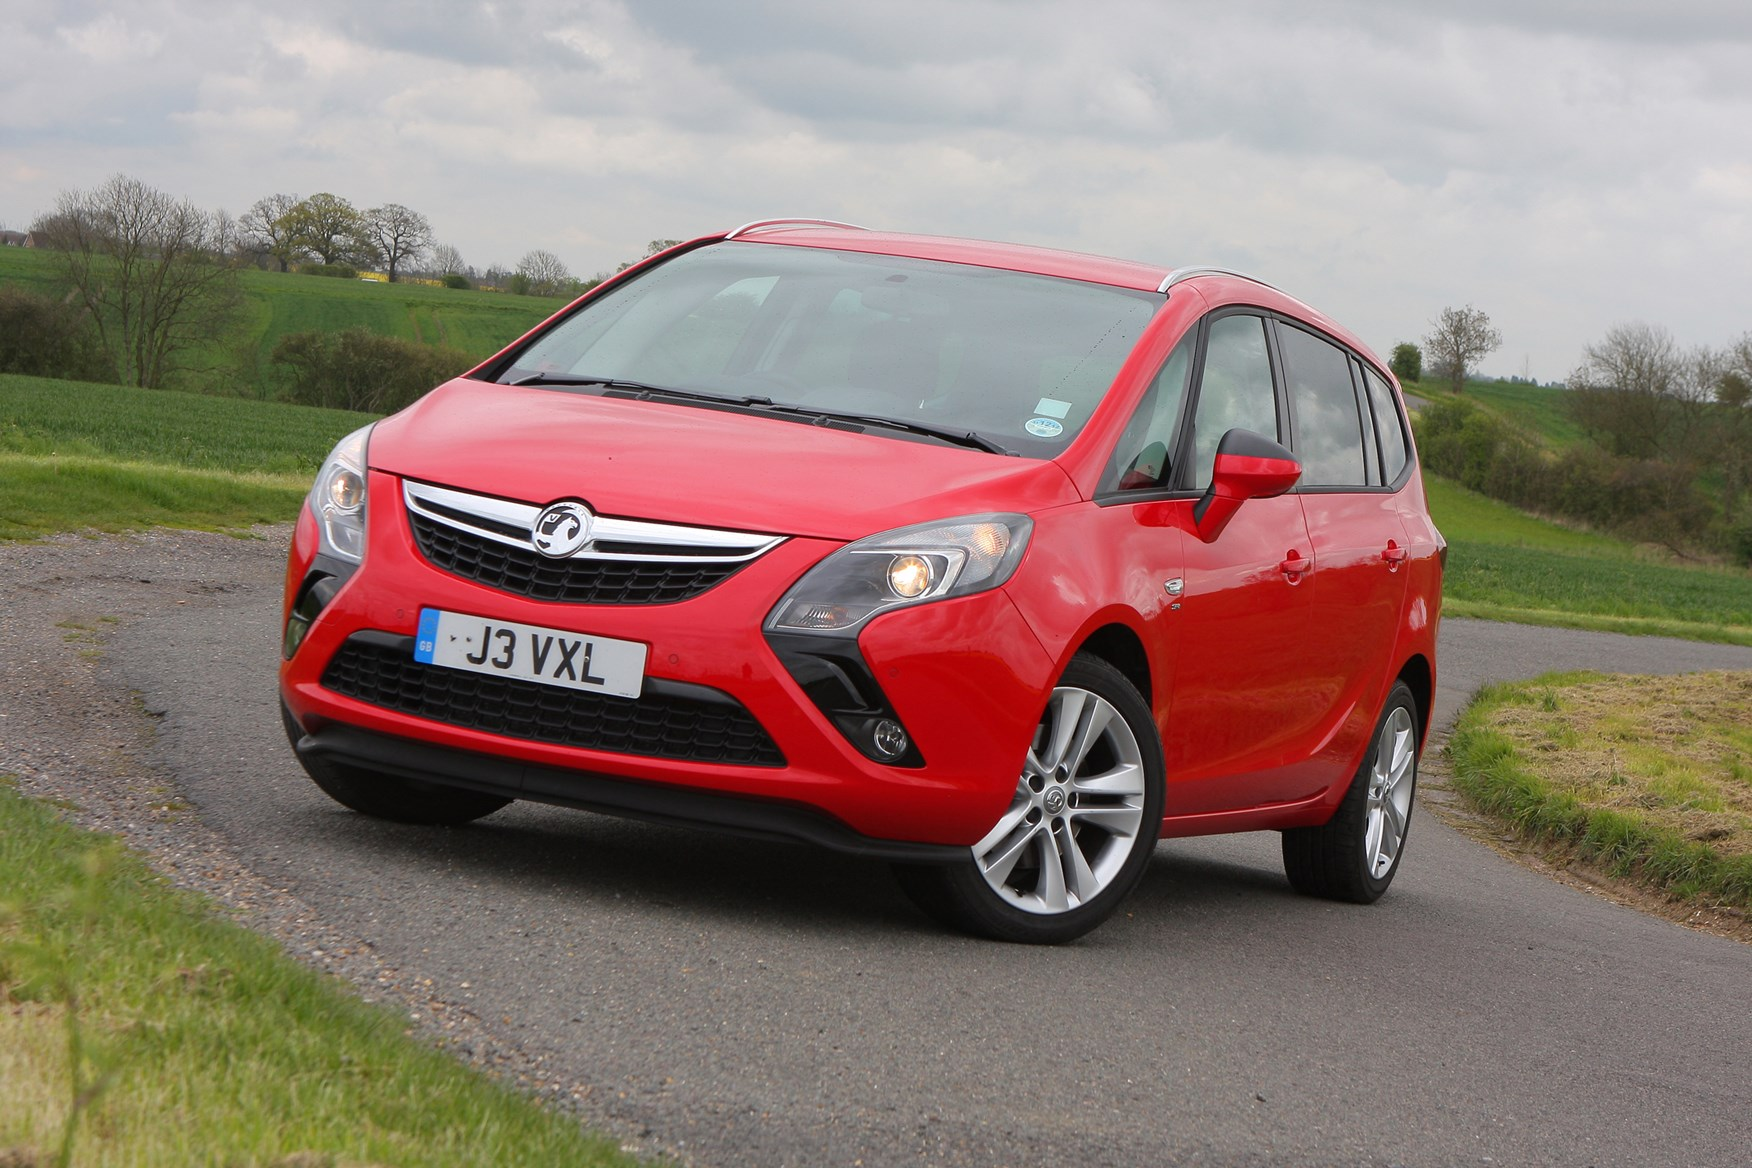 Vauxhall Zafira Tourer 2012 Features Equipment And Accessories